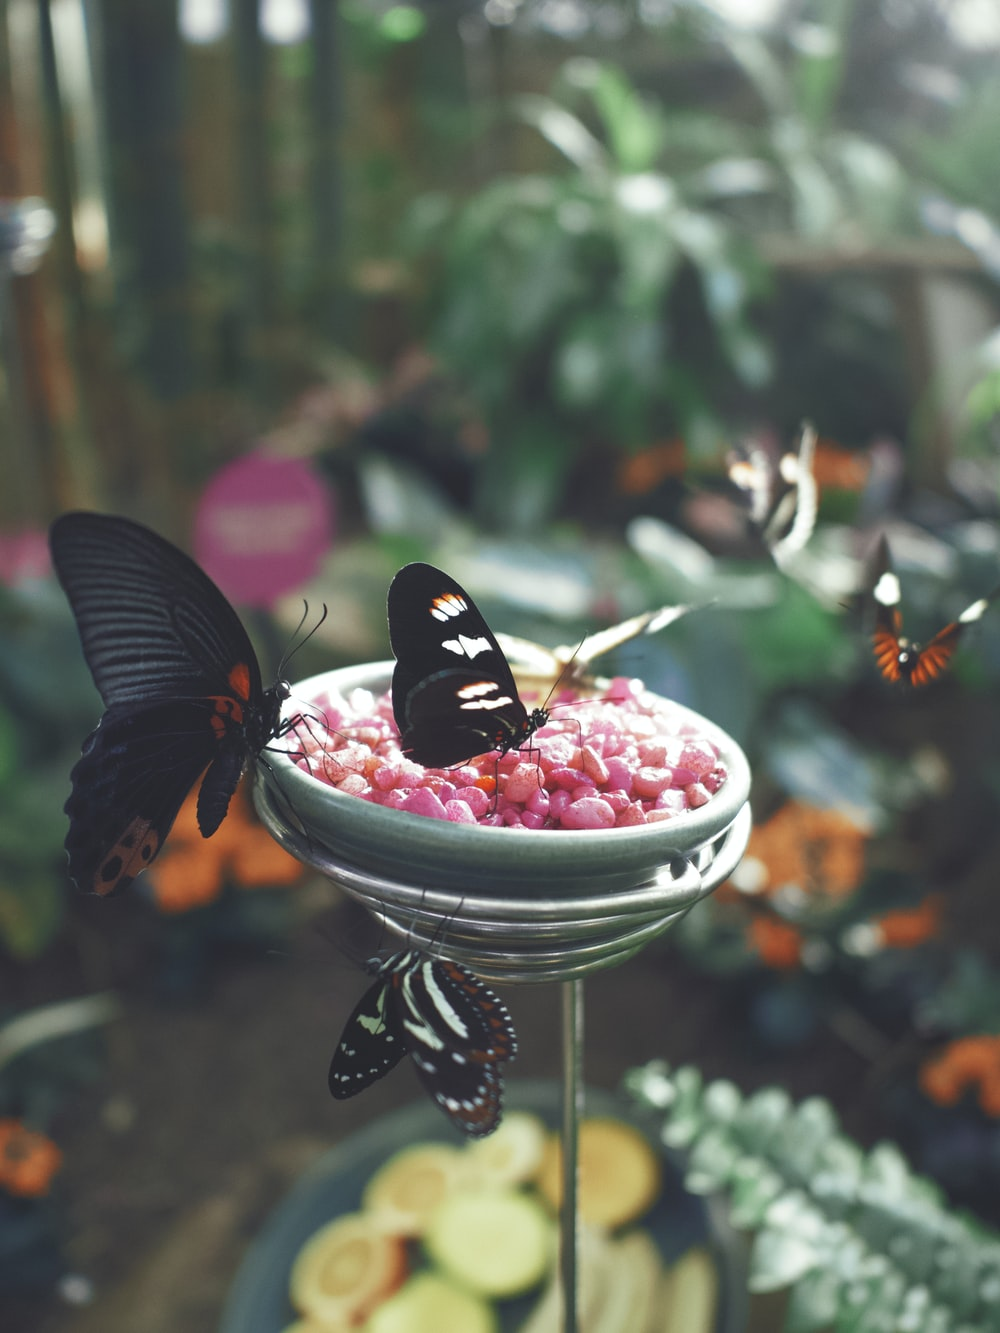 black butterfly on red and white round fruit on white ceramic bowl